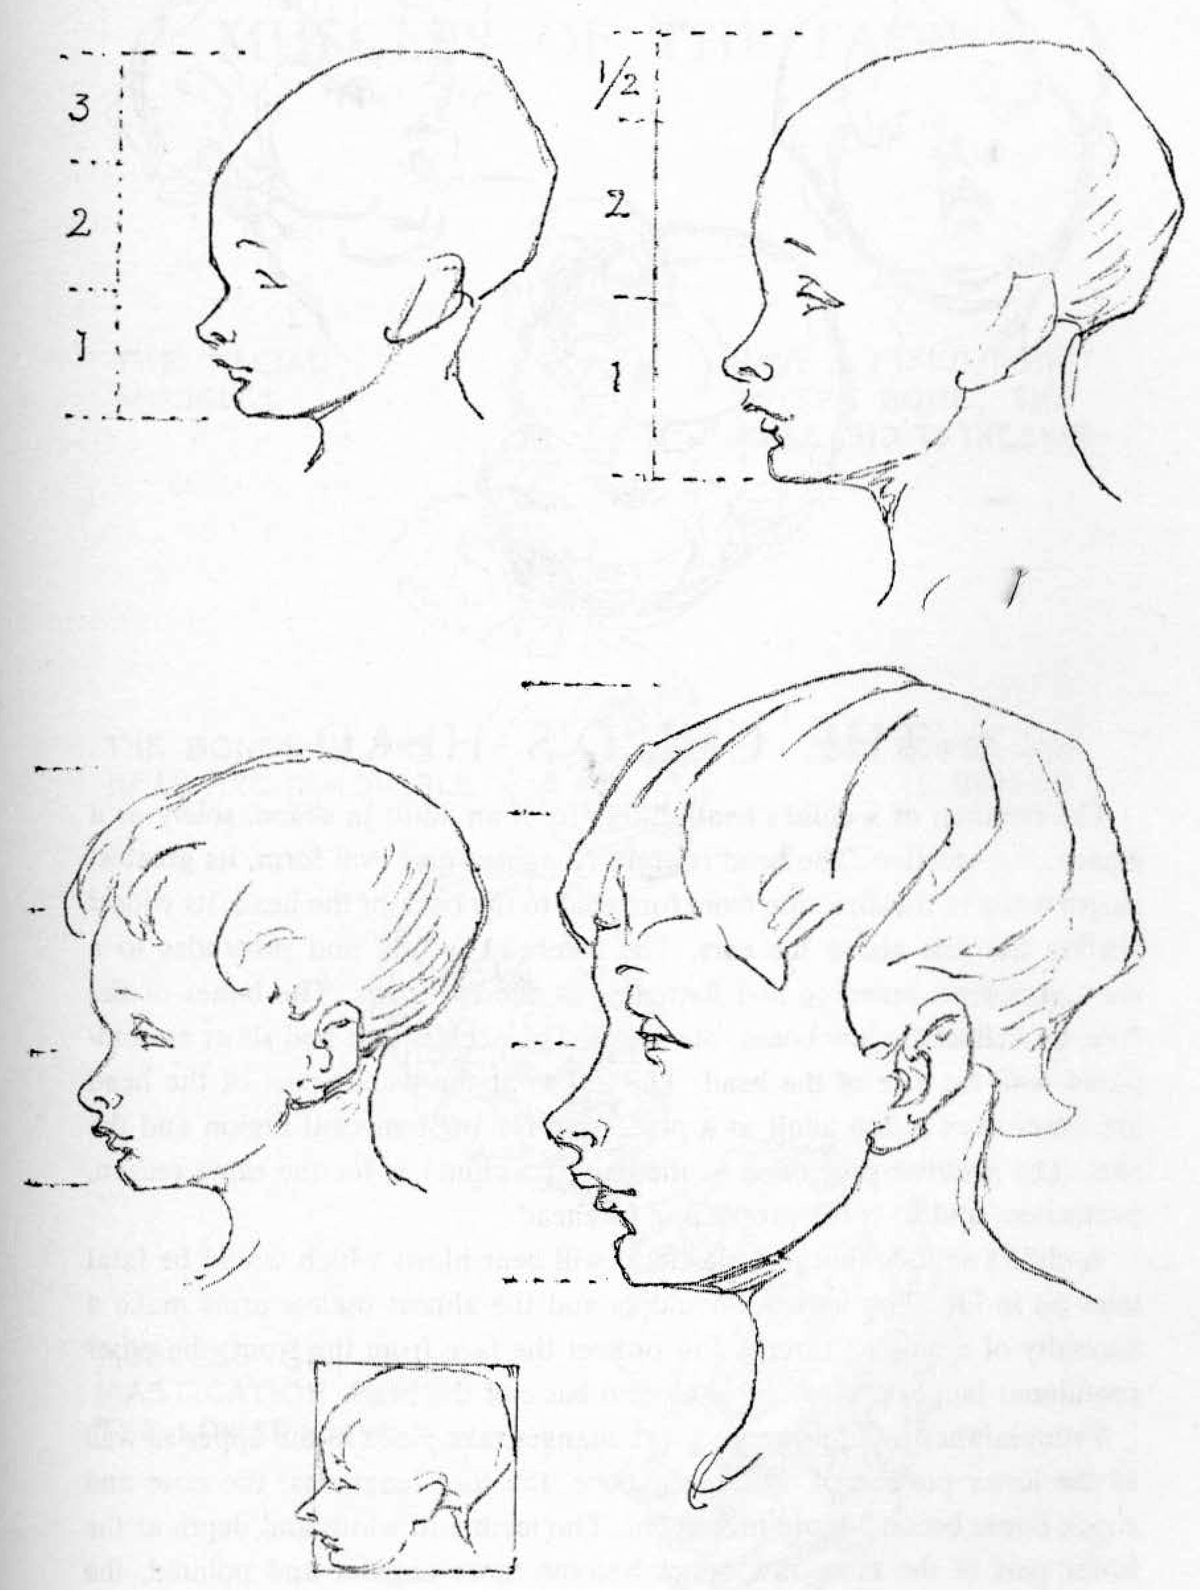 Learn How to Draw Children's and Baby's Faces in the